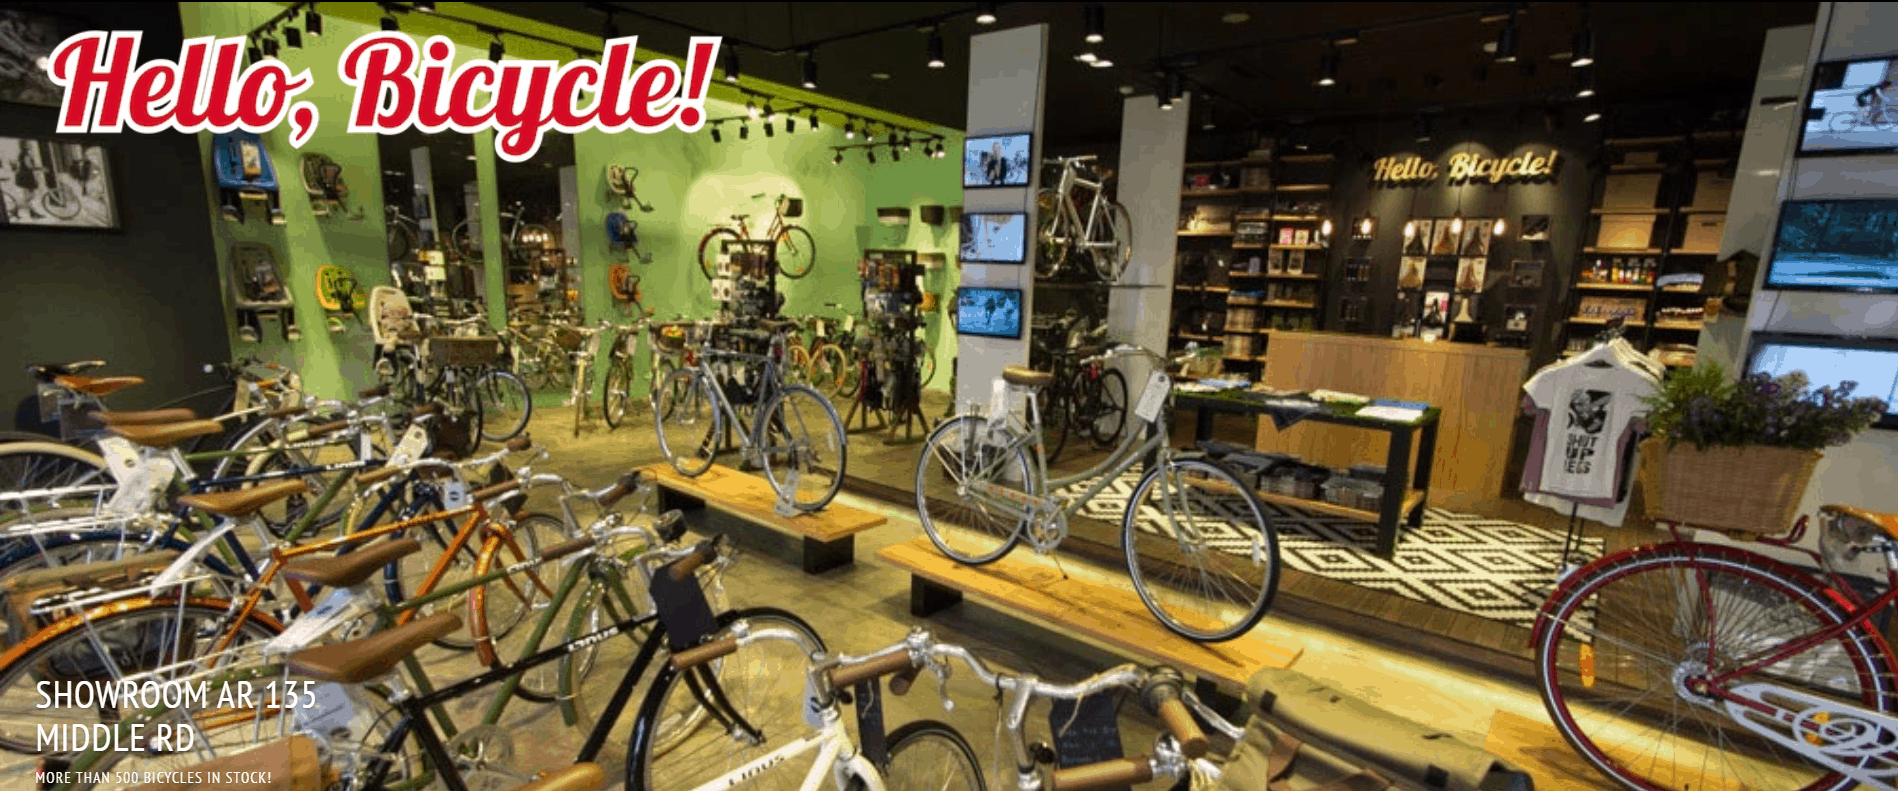 Hello, Bicycle! is the best shop to buy folding bicycle, leisure bicycle, kids bicycle, bicycle lock, vintage bicycle, bicycle helmets or bicycle shop in Singapore